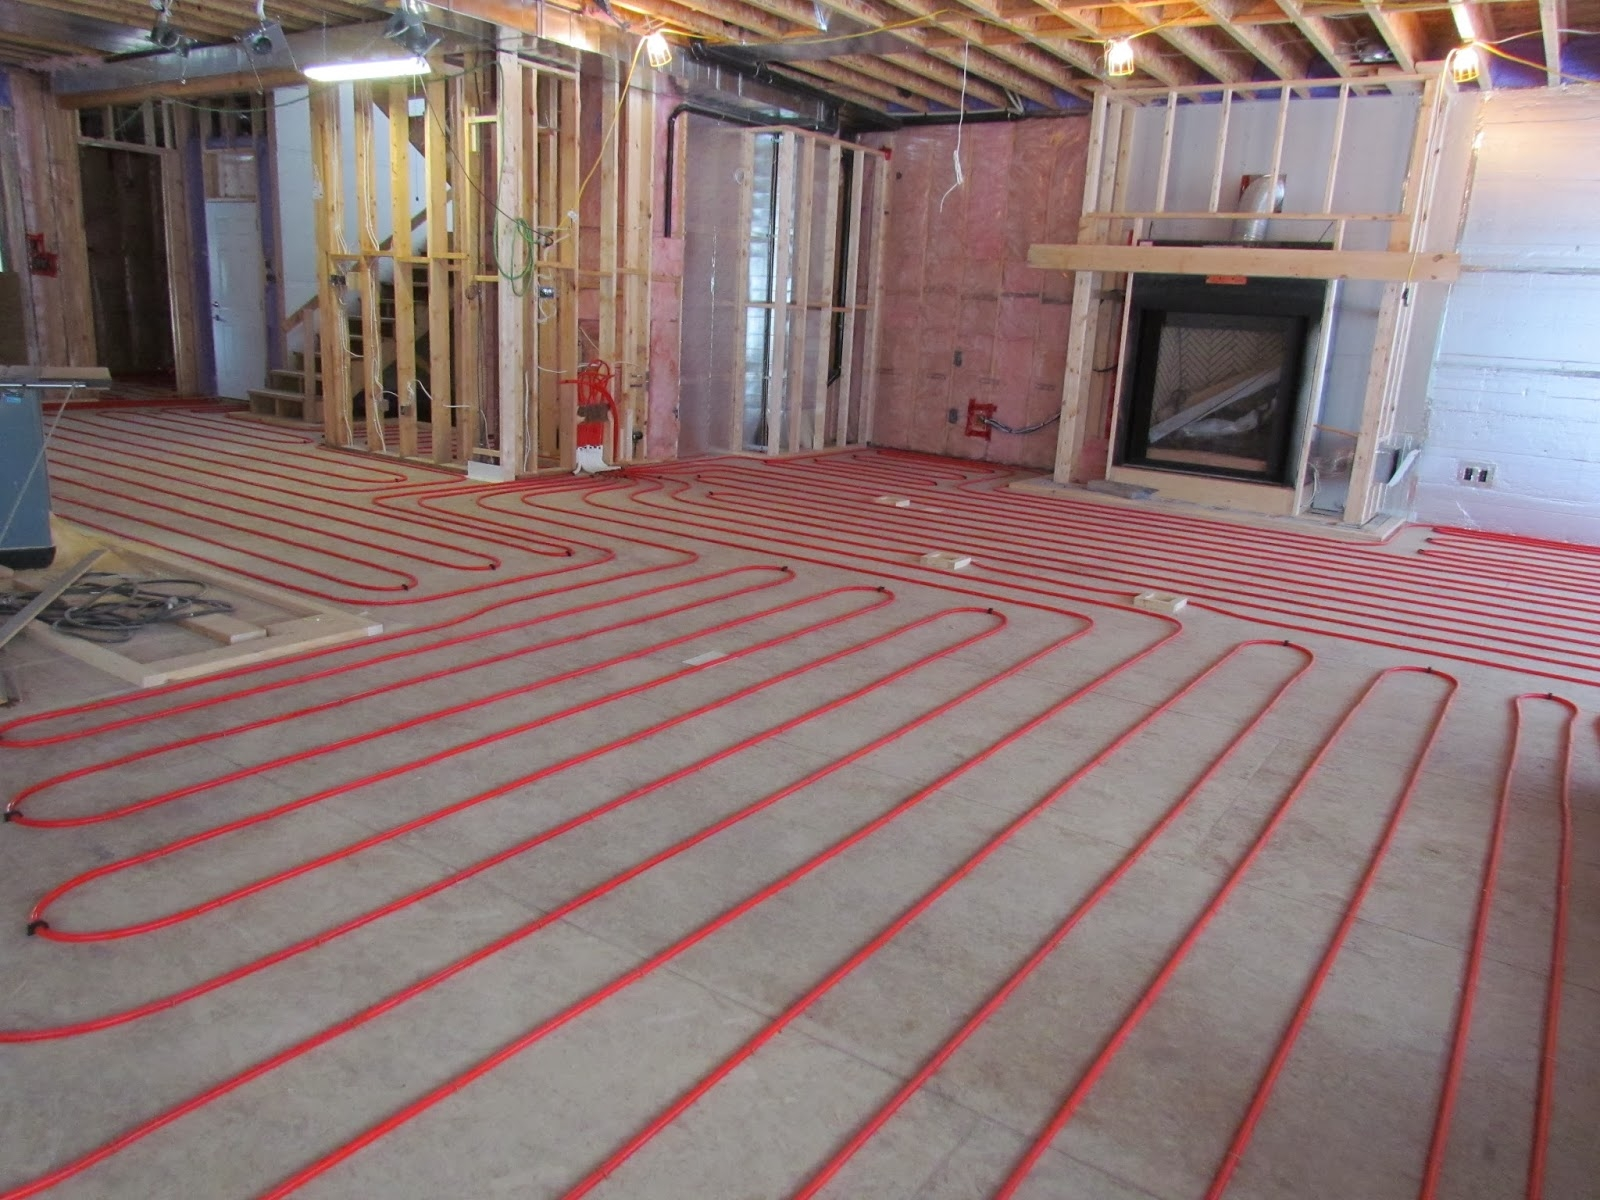 Basement Floor Radiant Heating System Basement Floor Radiant Heating System ask rob radiant in floor heating in the basement 1600 X 1200